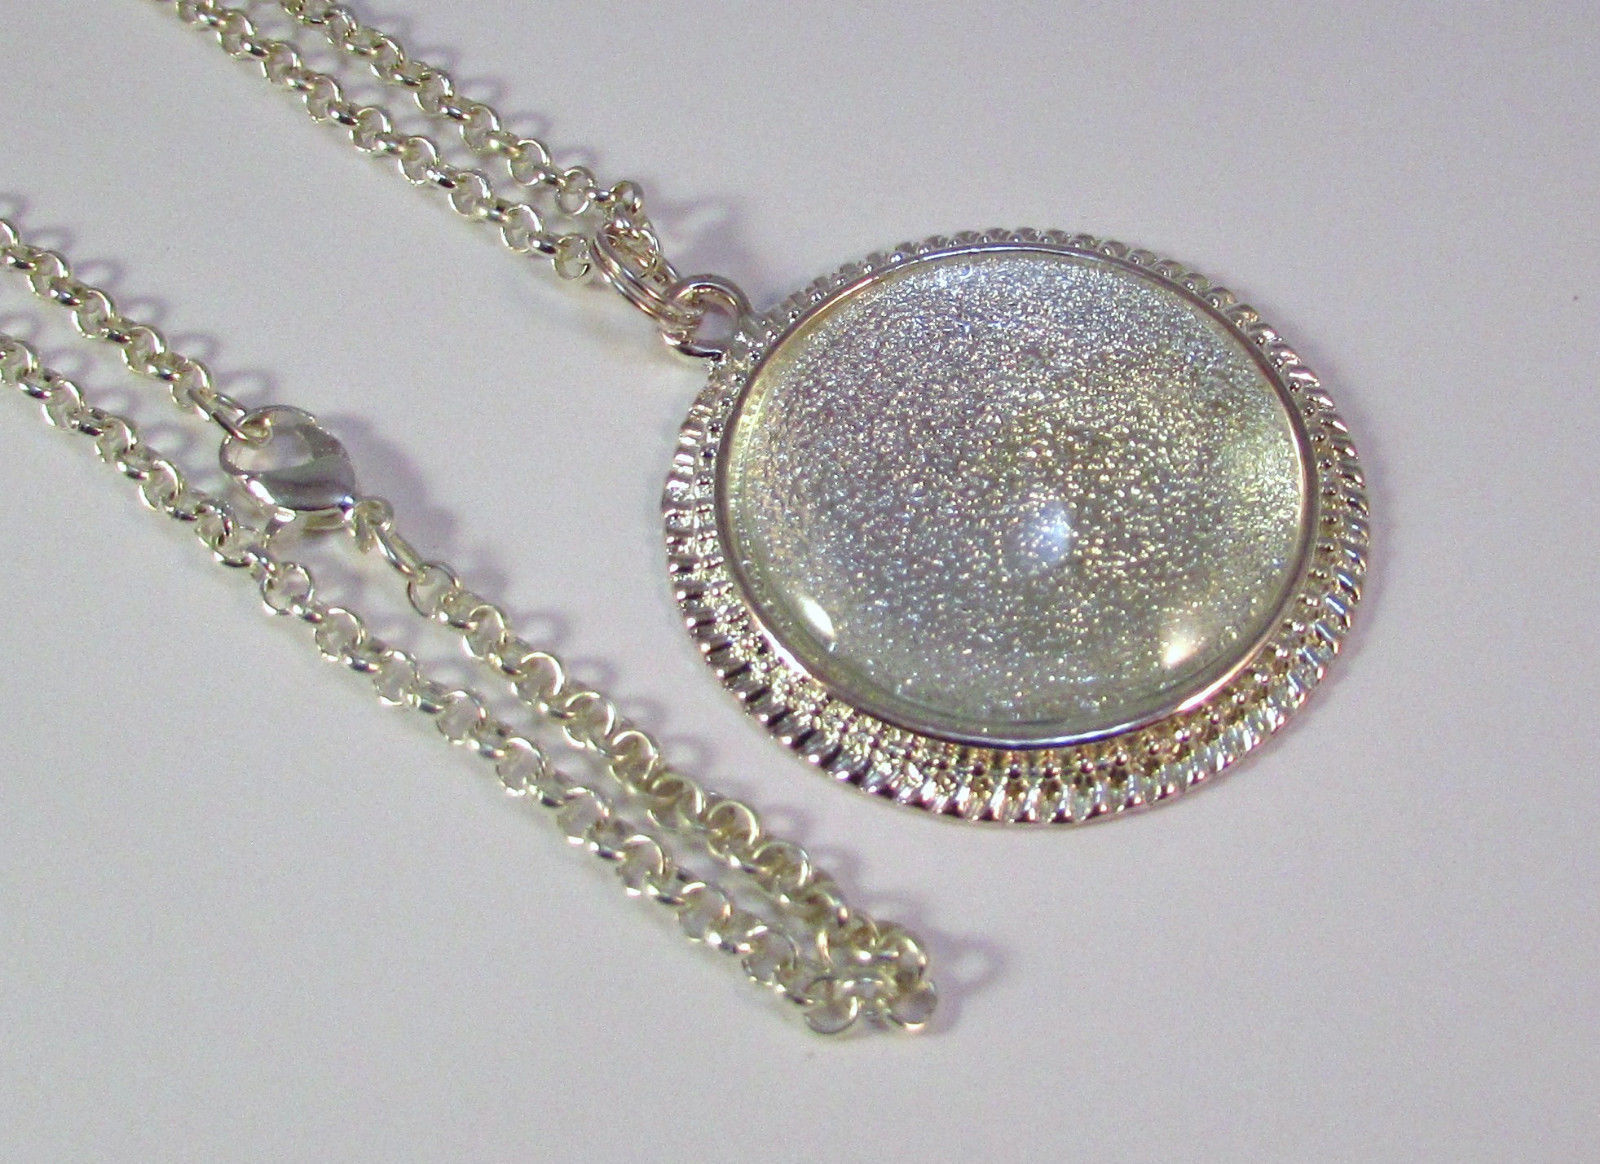 Primary image for Silver Round Pendant Trays Set Includes Glass Tile Insert & 20 Inch Rolo Chain